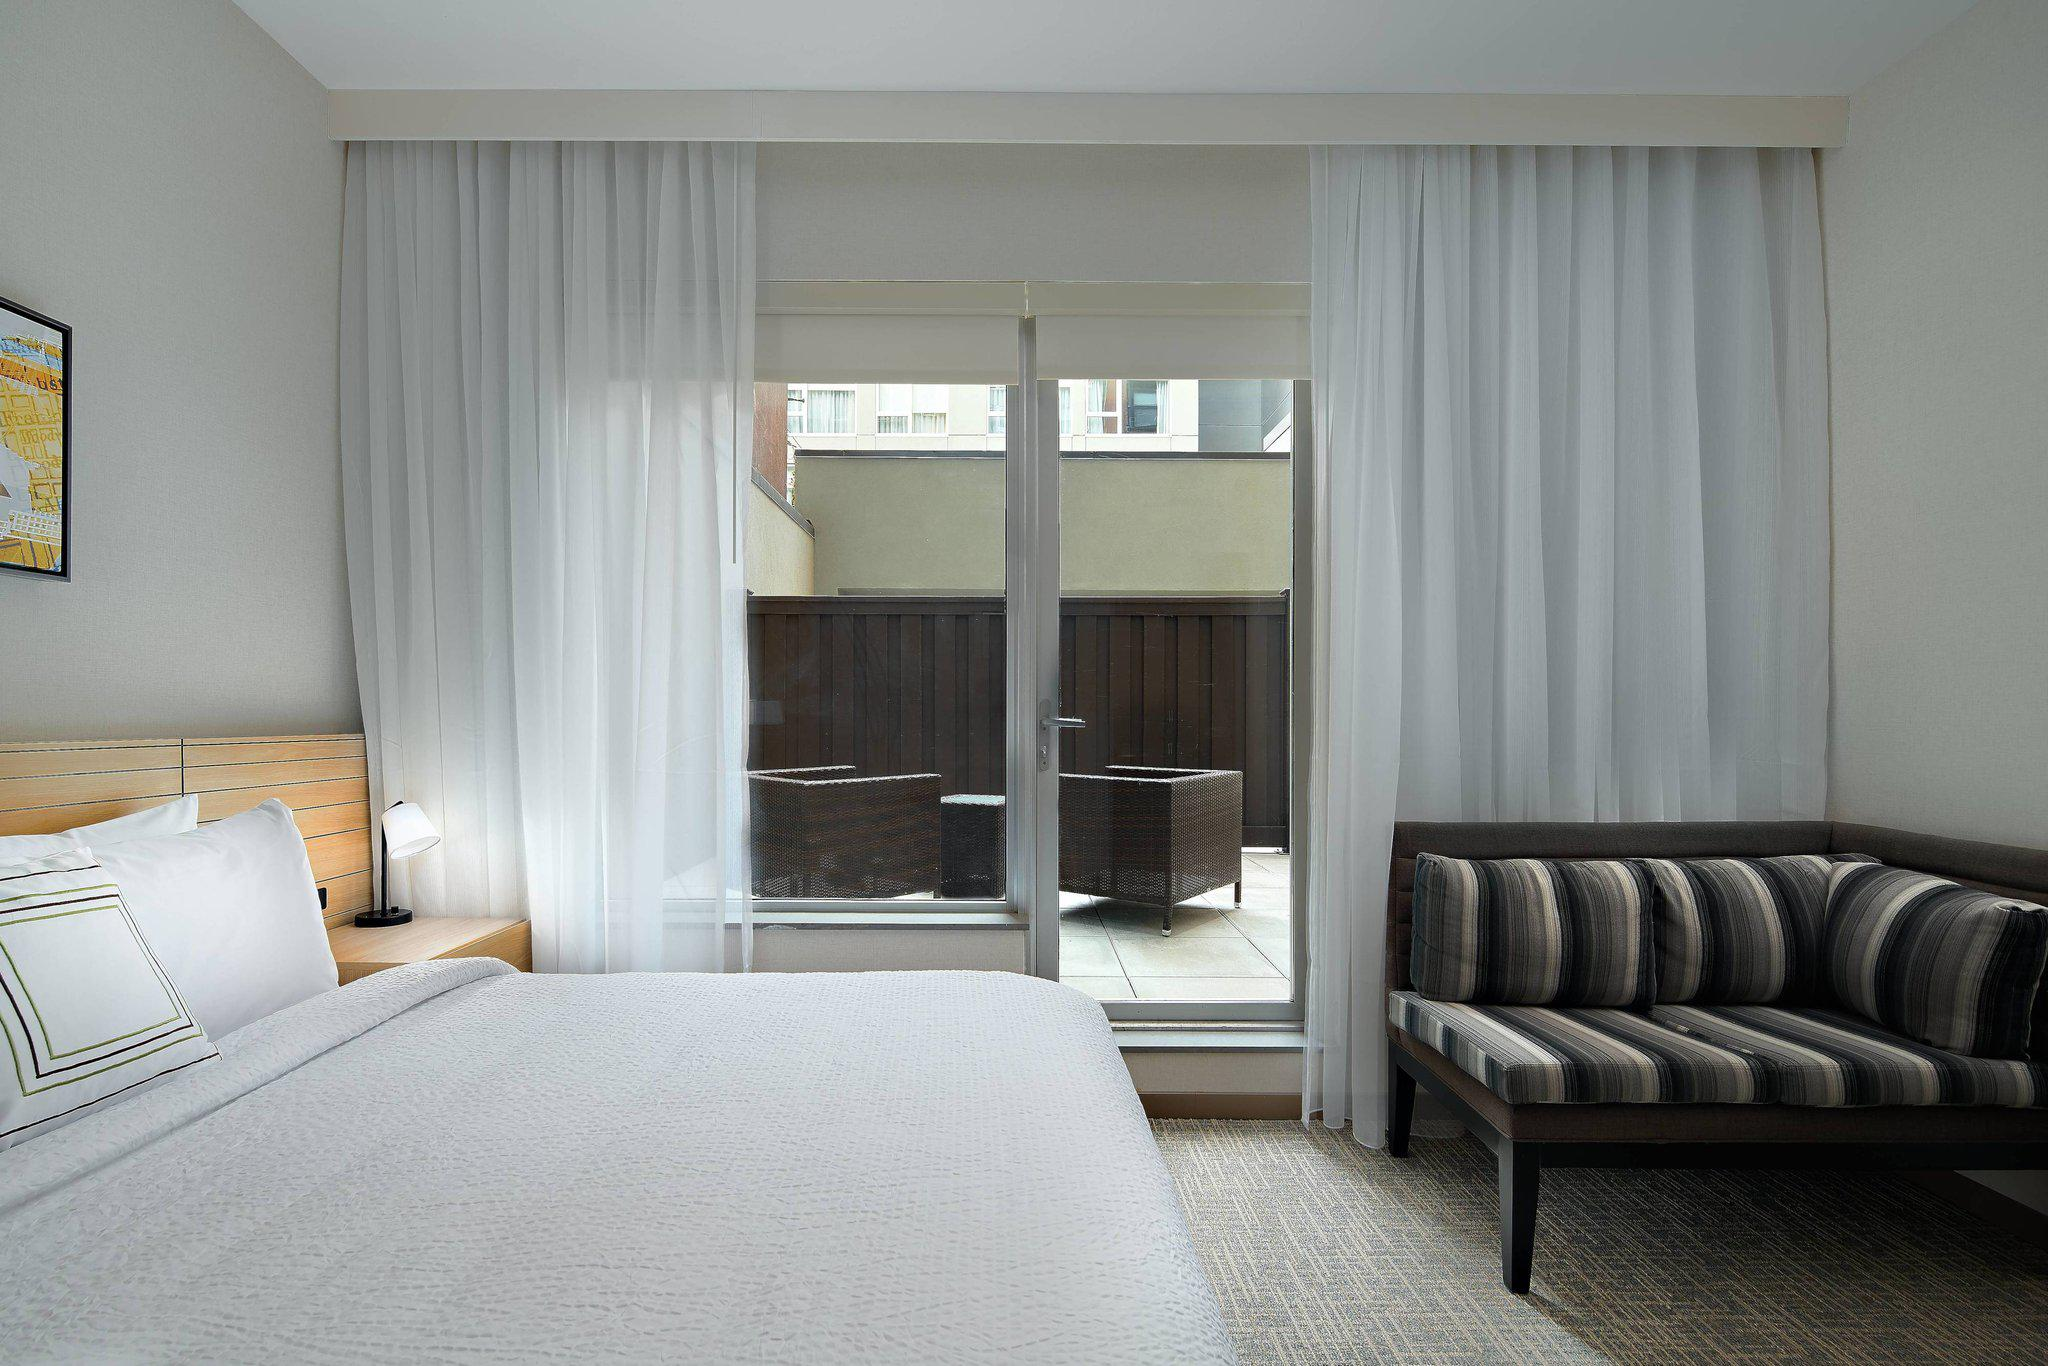 TownePlace Suites by Marriott New York Manhattan/Times Square